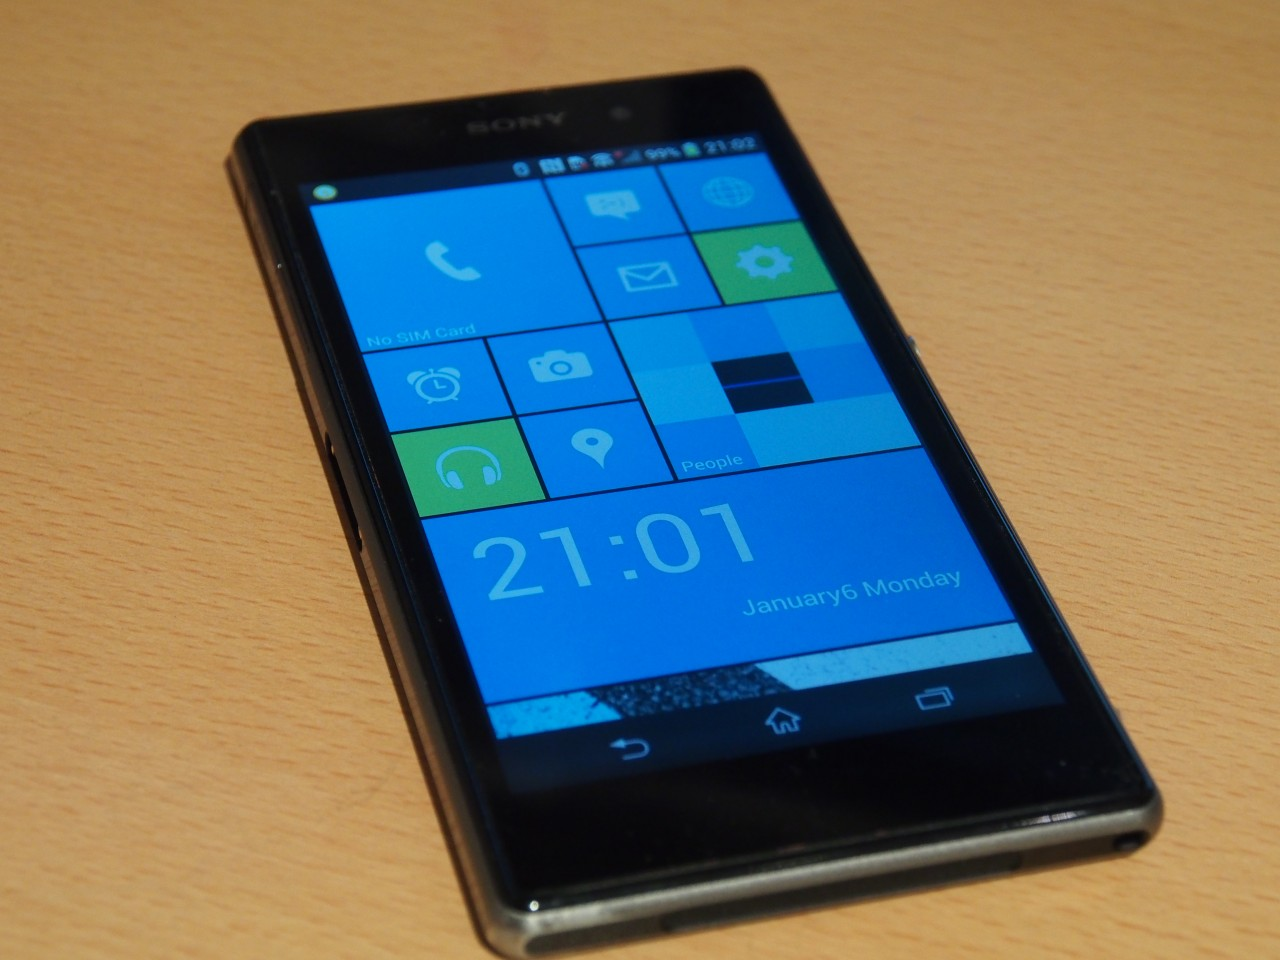 Xperia Windows Phone